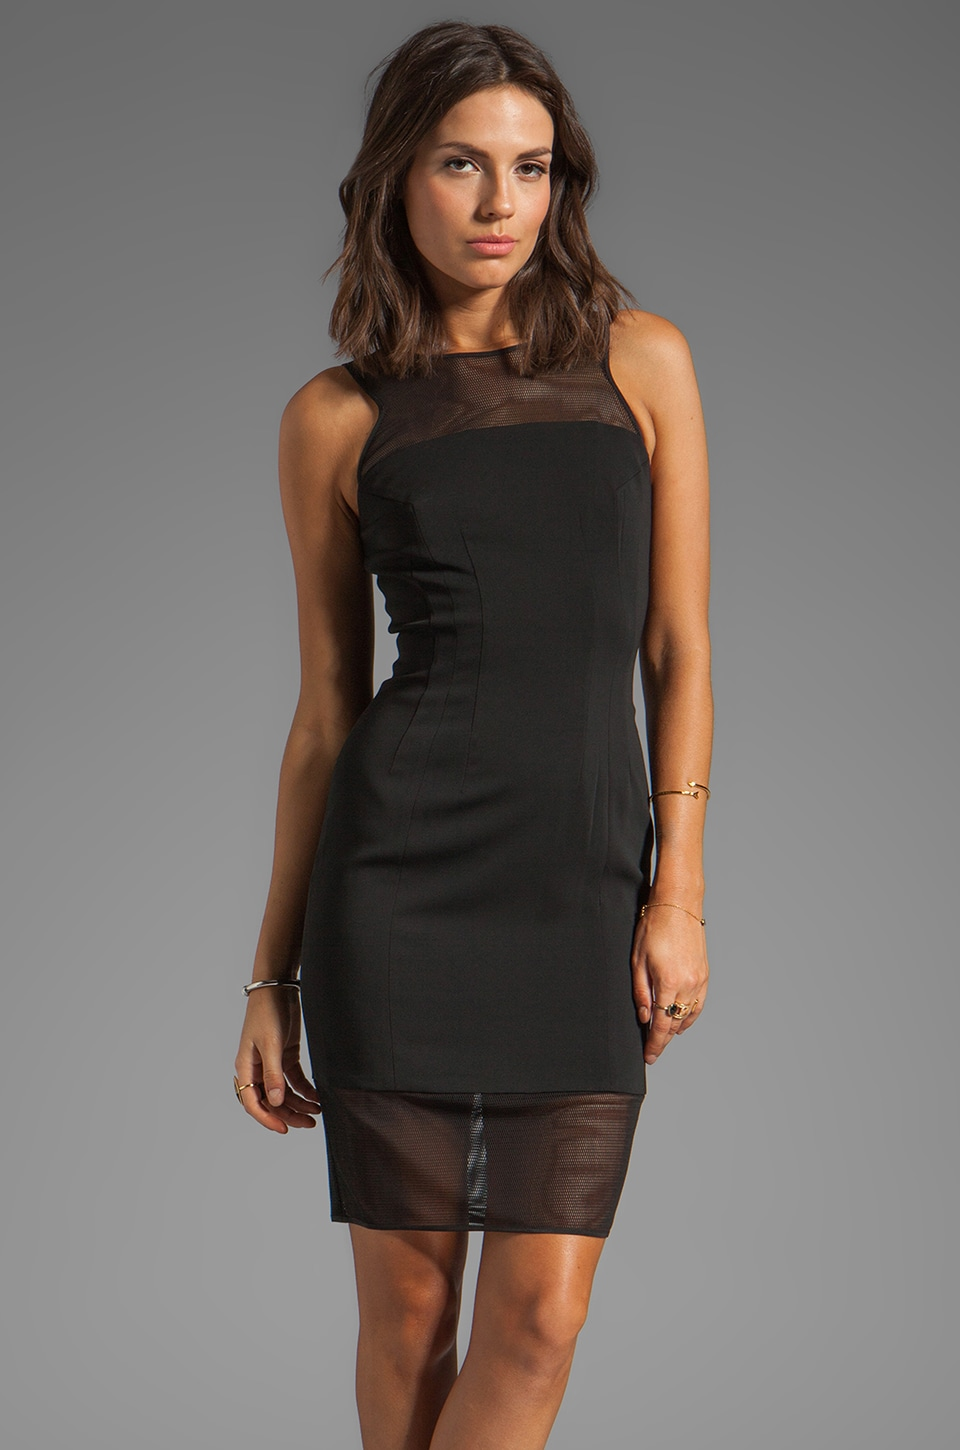 Jay Godfrey Dorchester Dress in Black